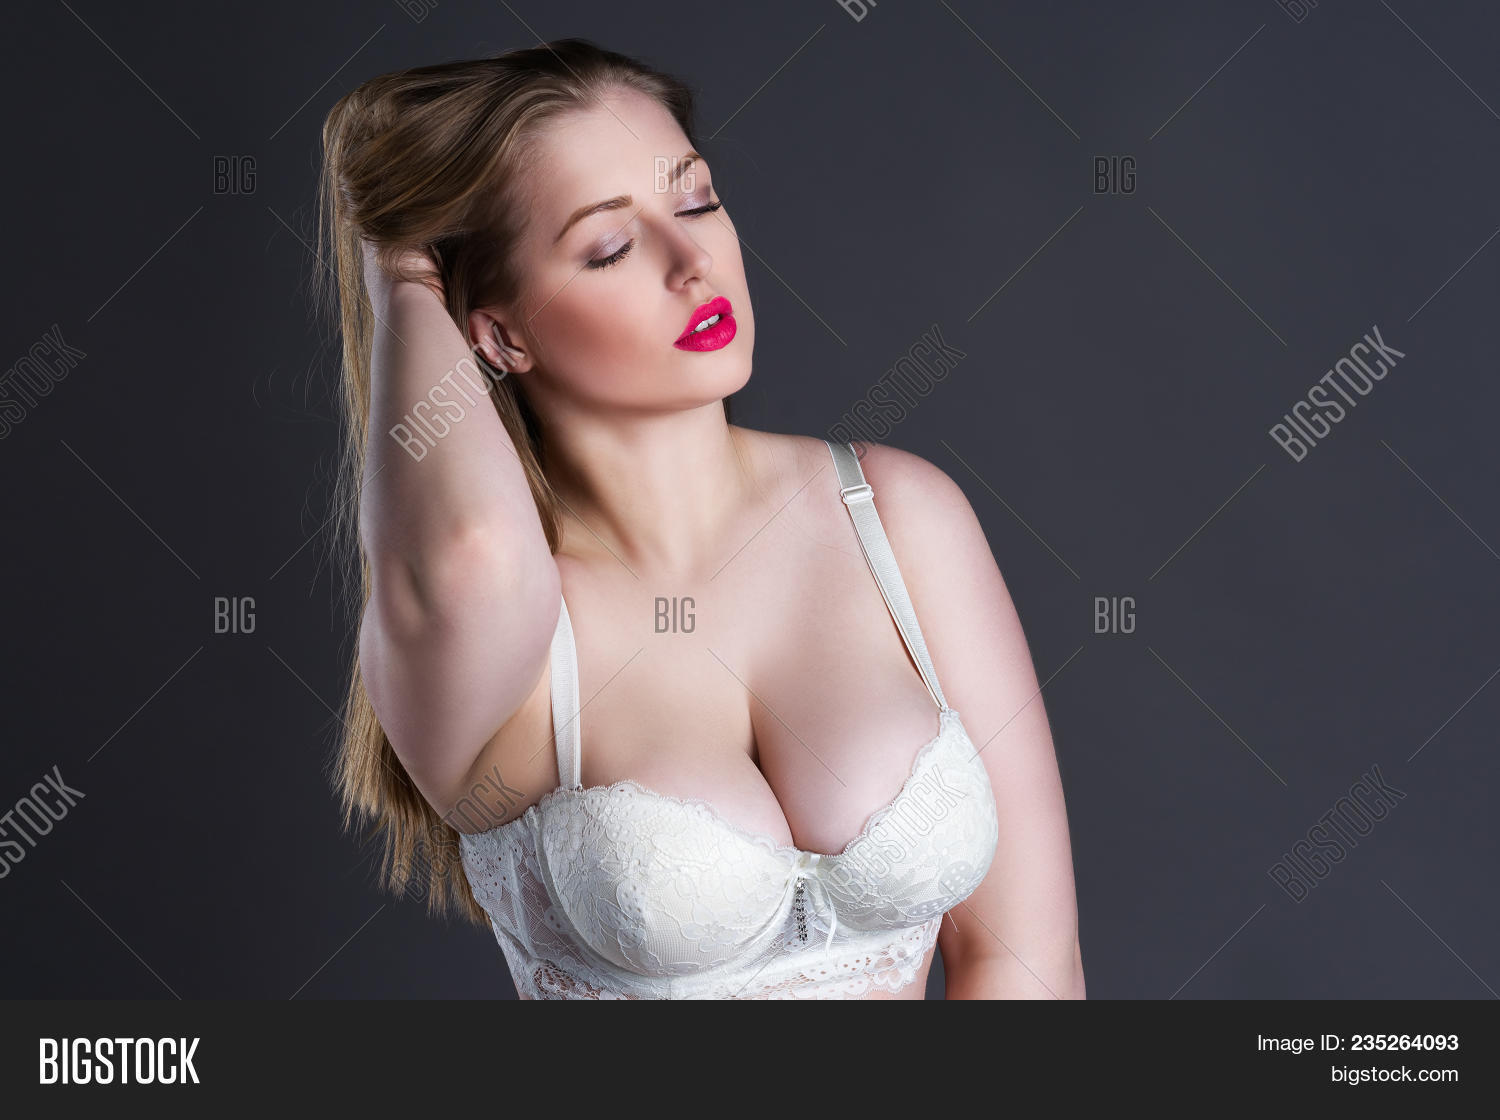 For that big blonde boob fat sexy visible, not